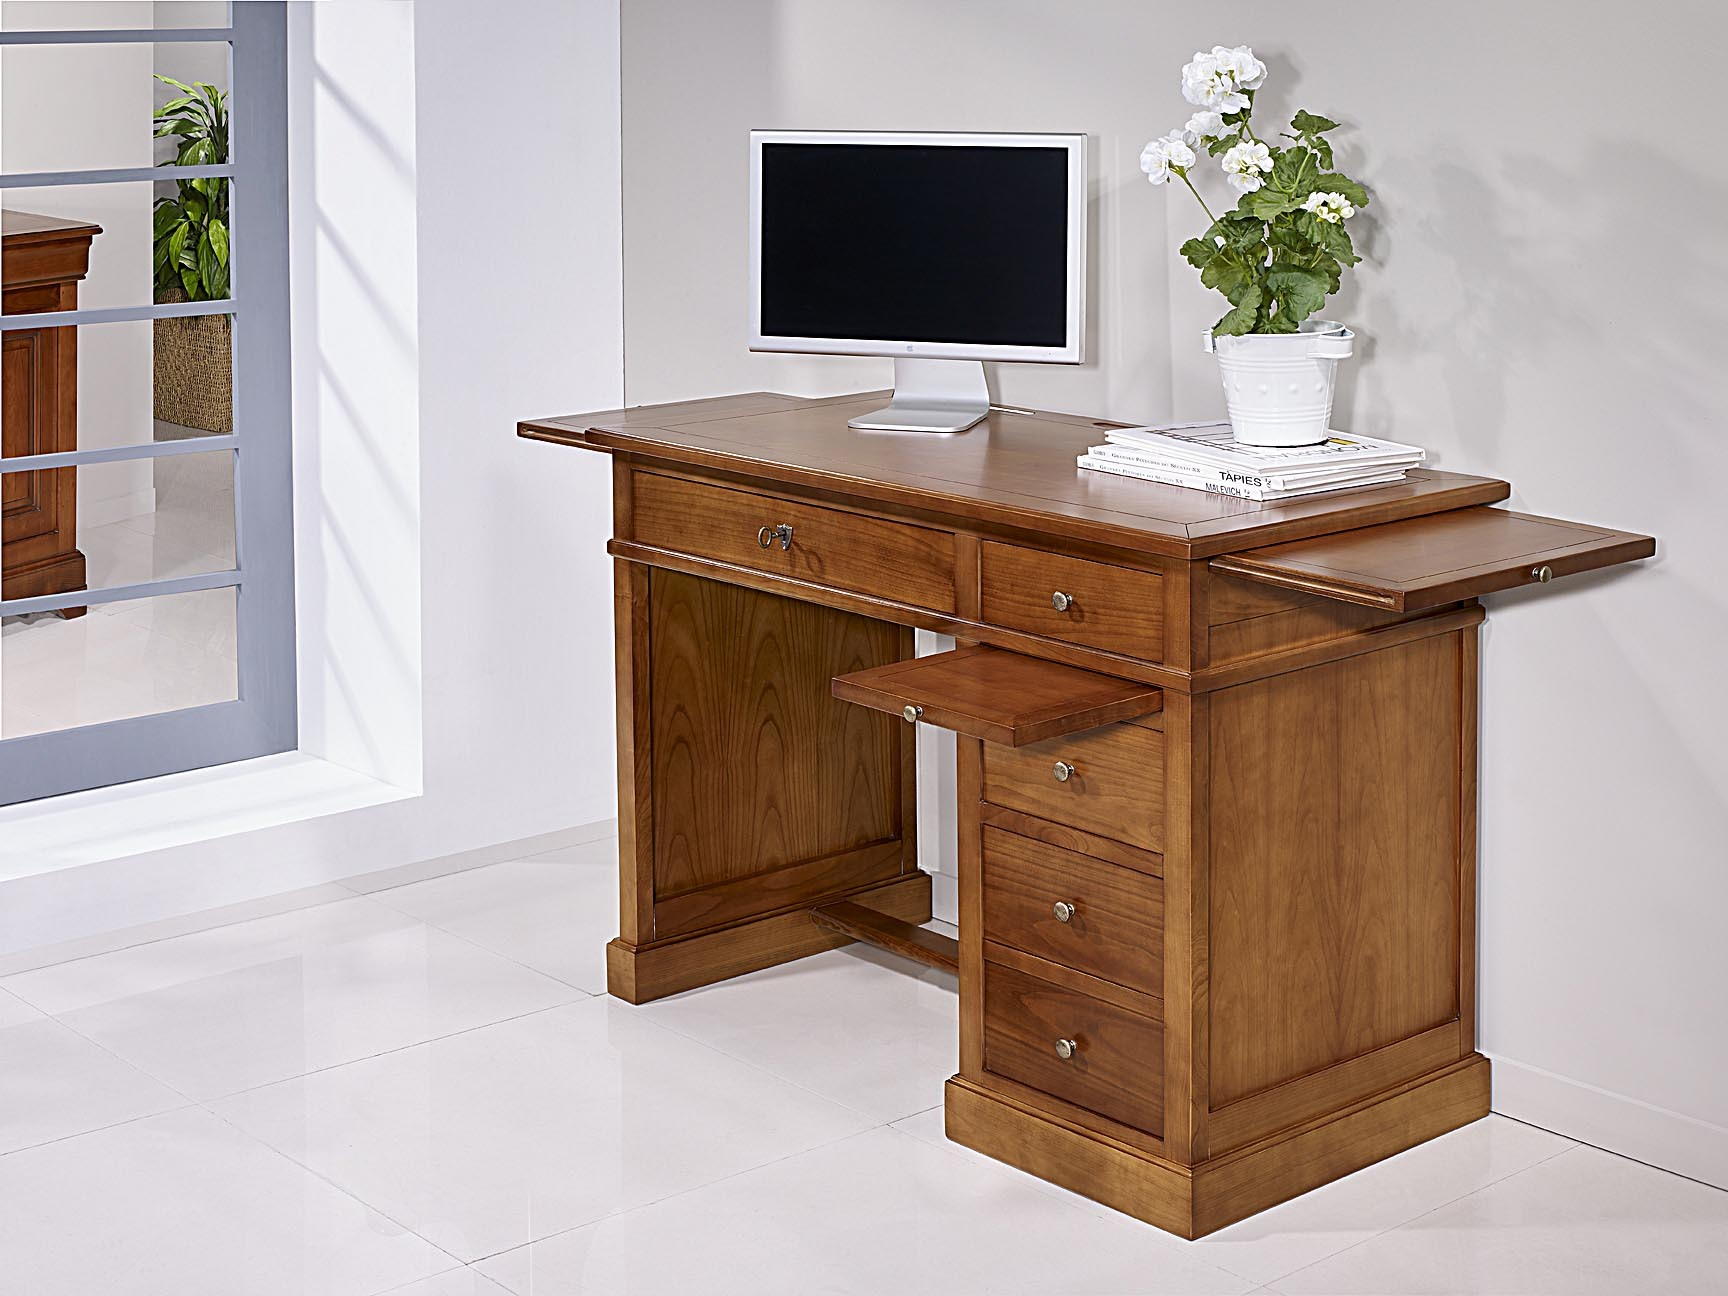 petit bureau lucie en merisier de style louis philippe. Black Bedroom Furniture Sets. Home Design Ideas